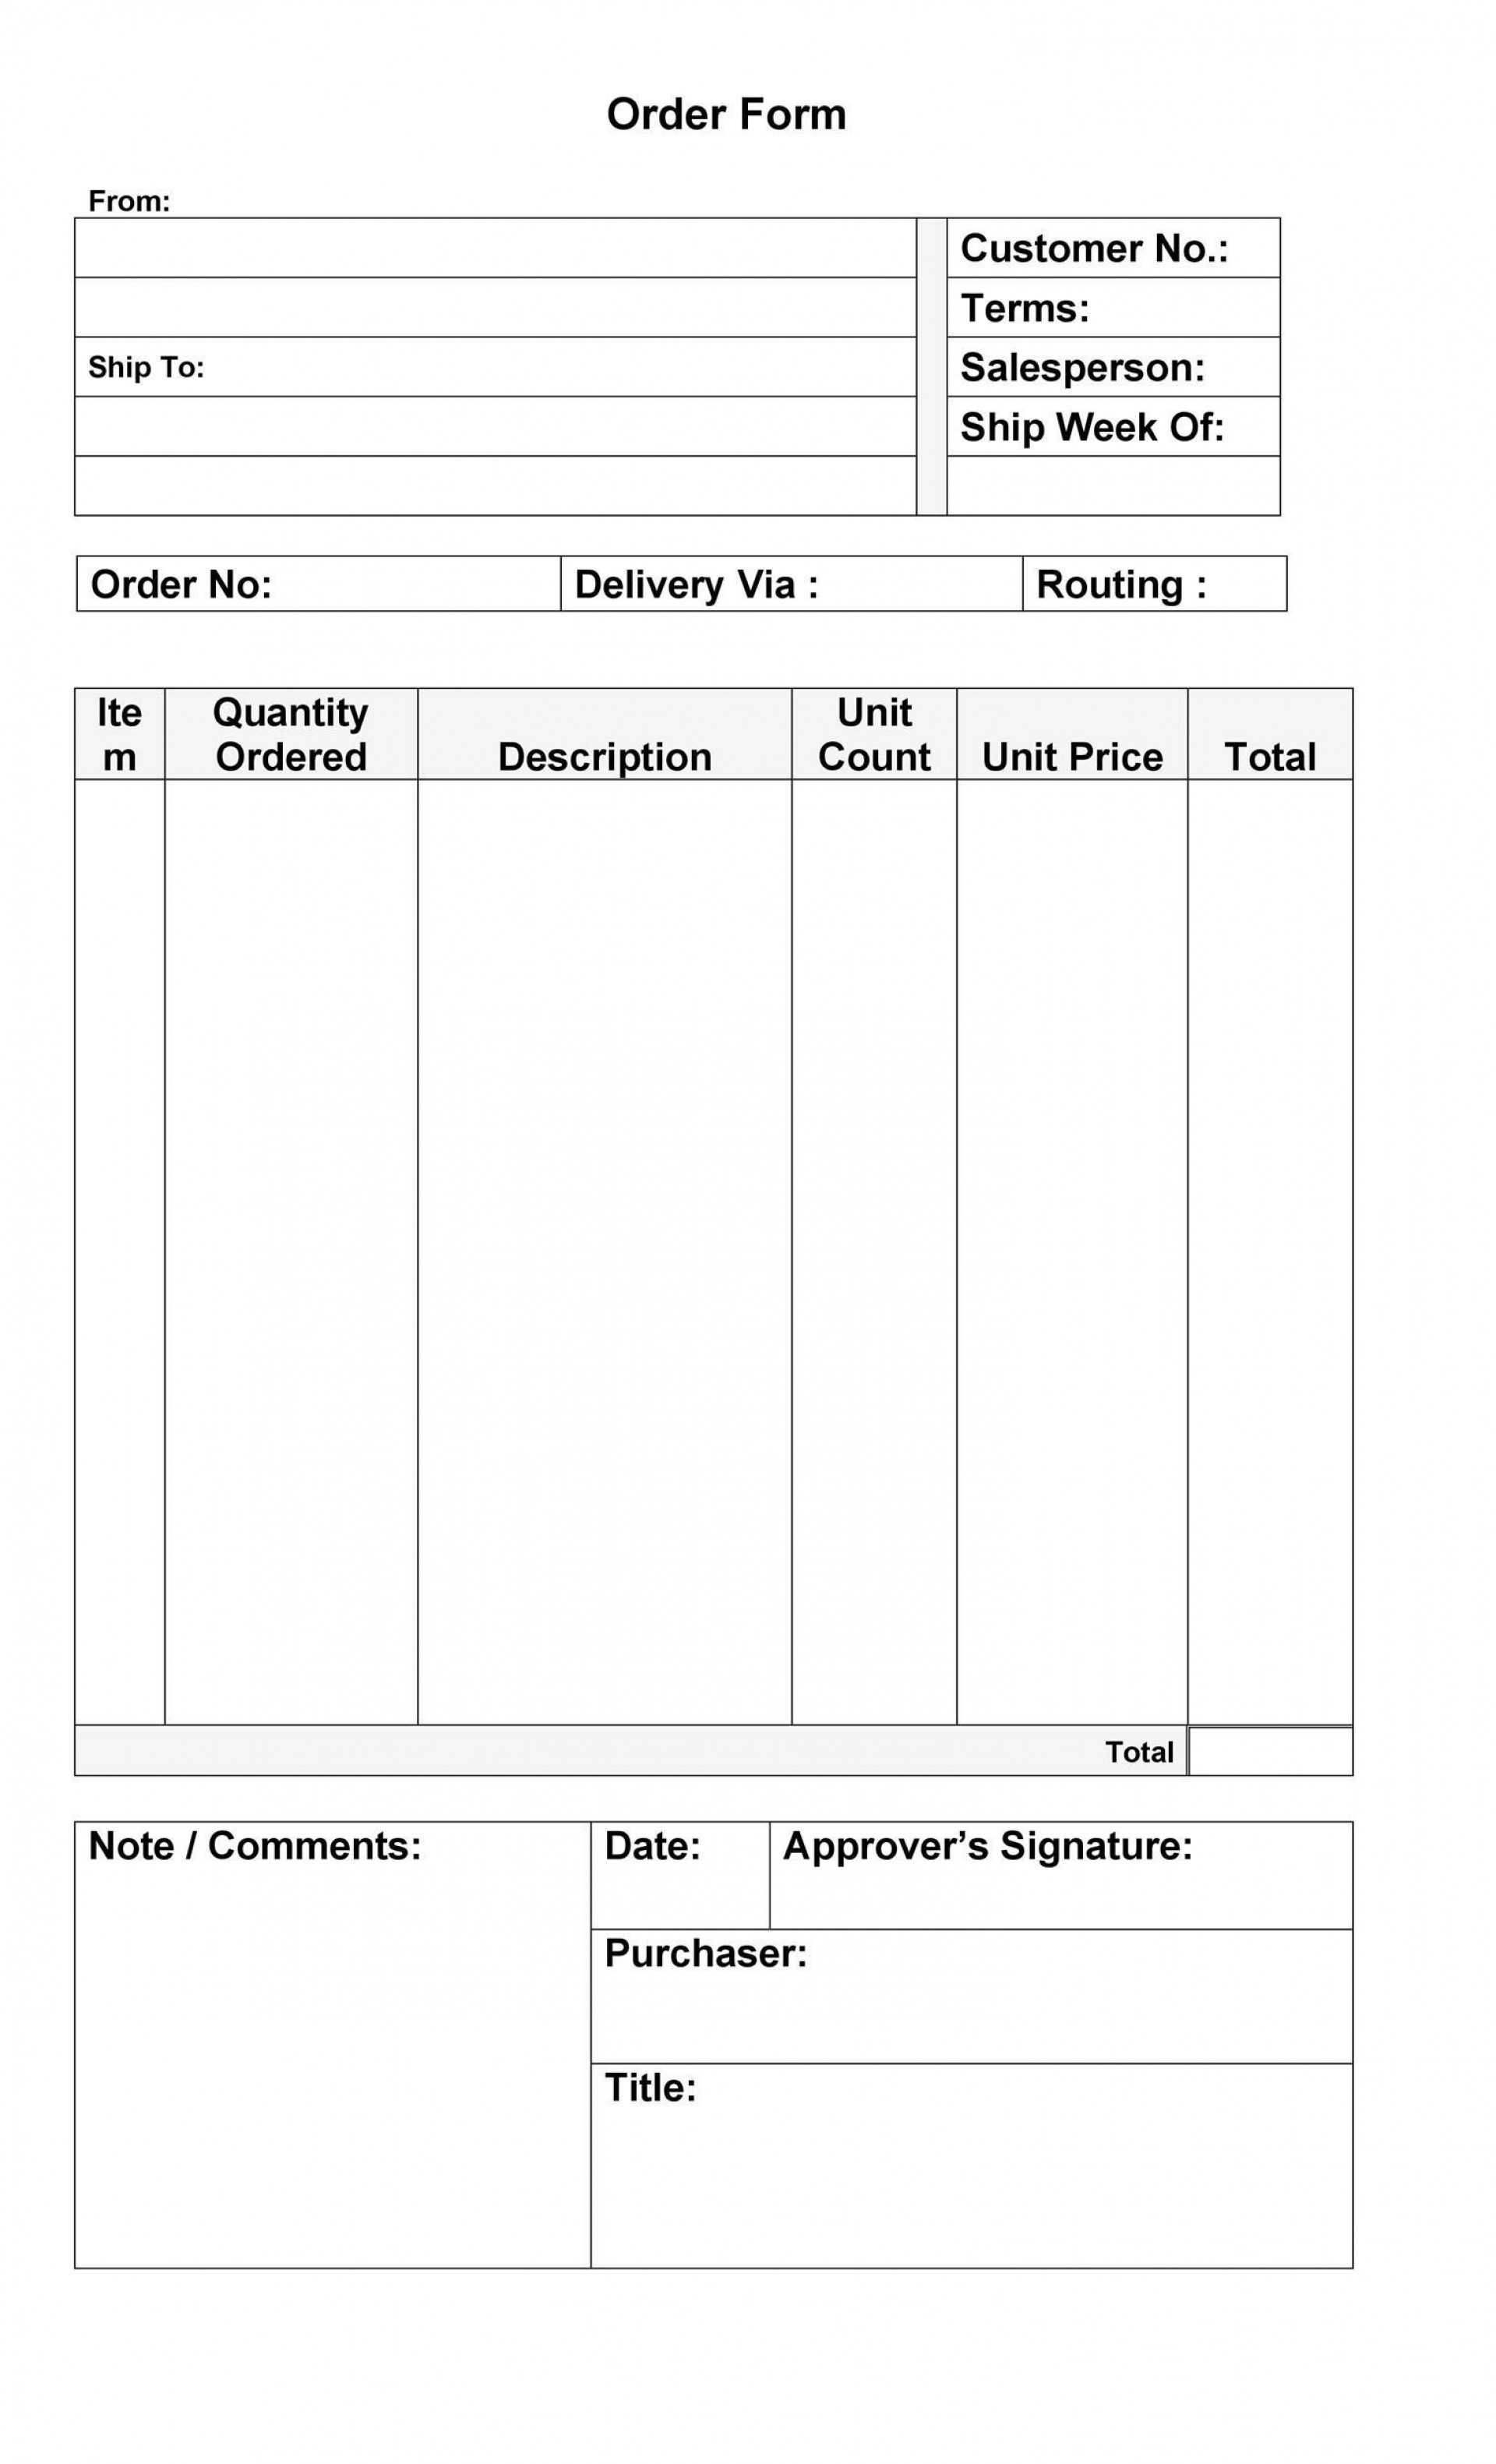 007 Formidable Food Order Form Template Word Highest Clarity 1920